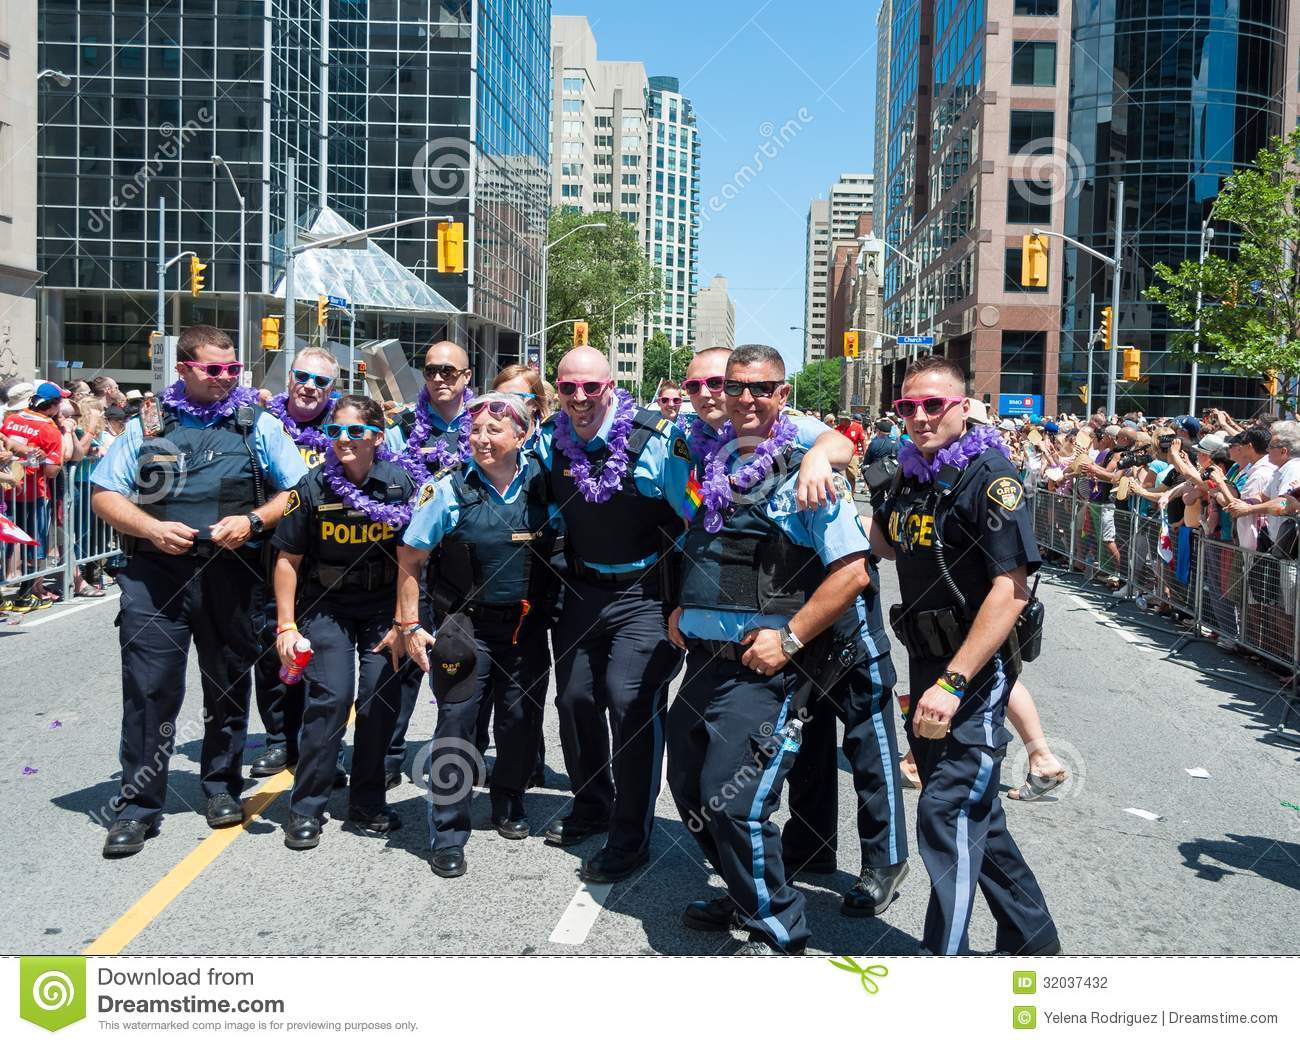 canadian history pride and adversity When asked about the history of pride, often the first thing that comes to people's minds are the stonewall riots canada, however, has it's own rich history and turning points in the struggle for and eventual celebration of lgbt rights the most well known of these are the toronto raids which lead to riots that turned into what.